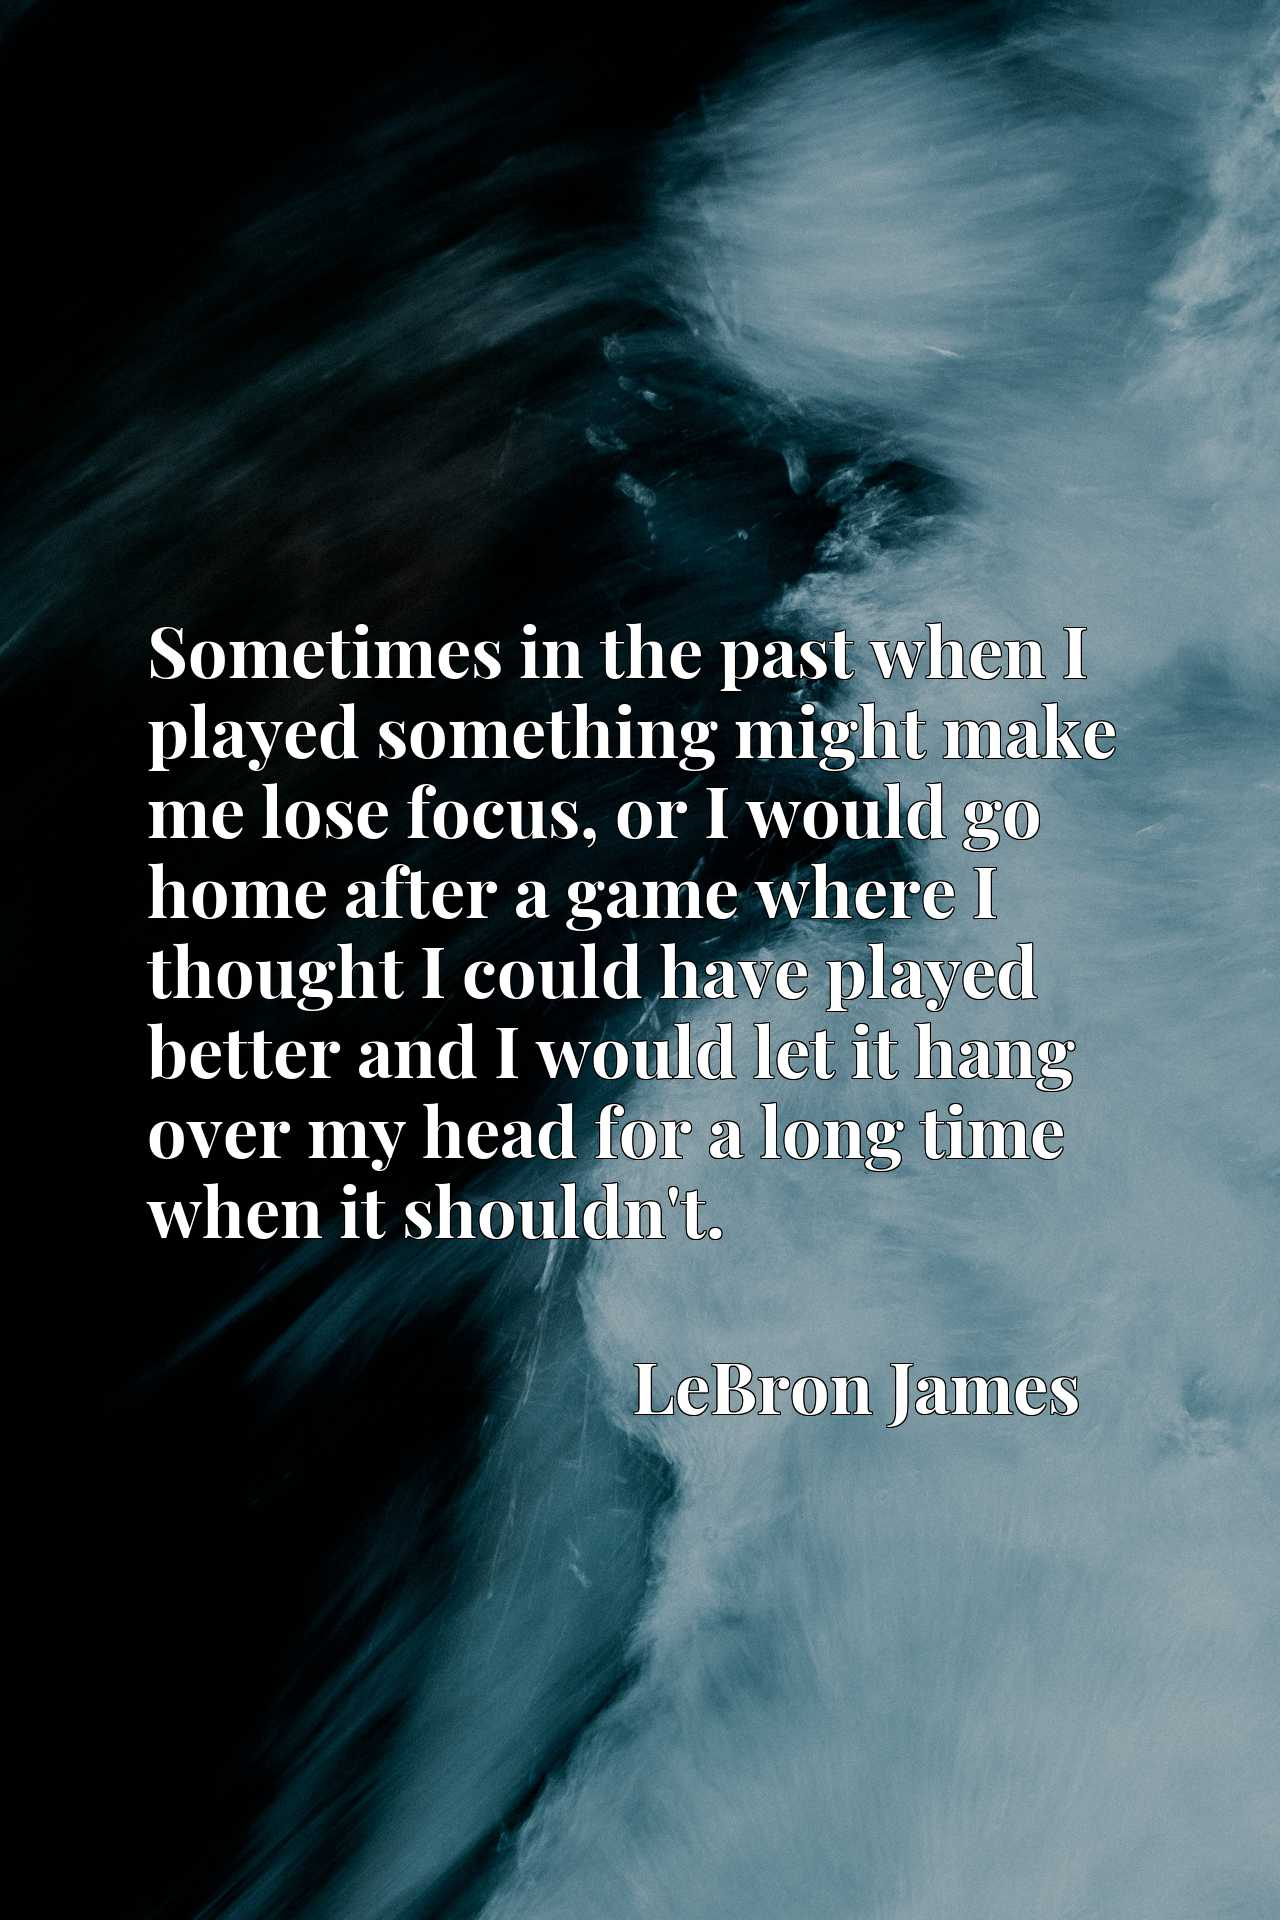 Sometimes in the past when I played something might make me lose focus, or I would go home after a game where I thought I could have played better and I would let it hang over my head for a long time when it shouldn't.